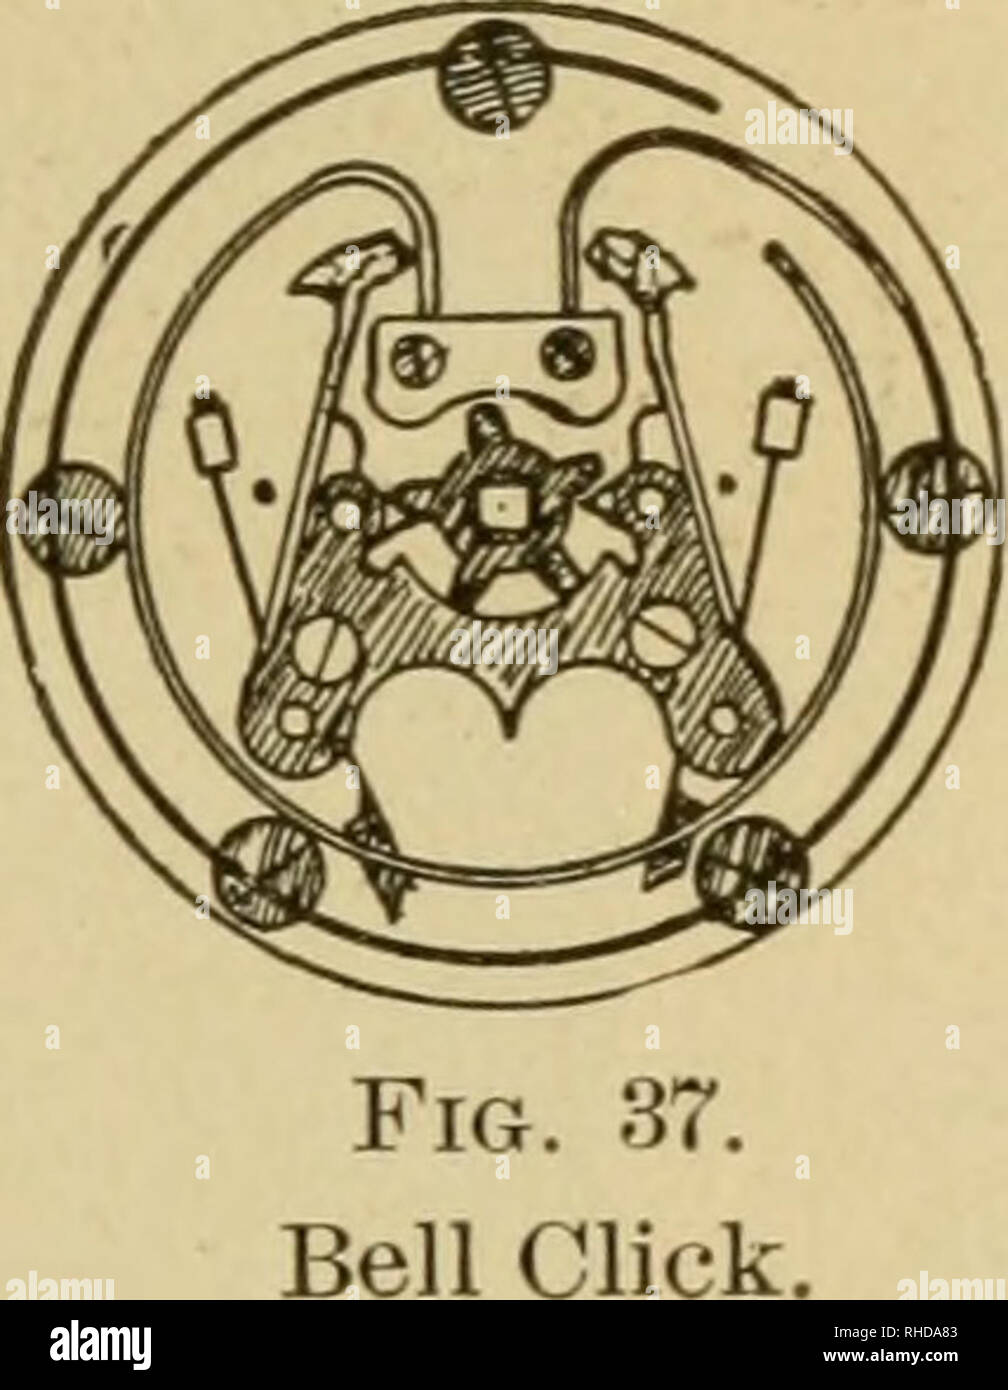 https://www alamy com/book-of-the-black-bass-black-bass-bass-fishing-fig-36-diagram-of-epicycloidal-wheel-ure-still-of-the-snyder-plan-as-also-the-long-narrow-spool-the-improvements-are-a-collar-to-crank-shaft-sliding-but-tons-for-alarm-and-drag-and-a-better-shape-to-front-disk-plate-here-we-have-for-the-first-time-the-bent-or-it-shapcd-alarm-spring-formed-of-a-piece-of-watch-spring-tt-will-be-further-observed-that-with-the-exception-of-the-ornamental-bars-or-pillars-of-the-hardman-reel-this-reel-is-a-close-imitation-of-it-in-its-general-form-in-the-sliding-imttons-and-their-screws-in-the-collar-image234477379 html